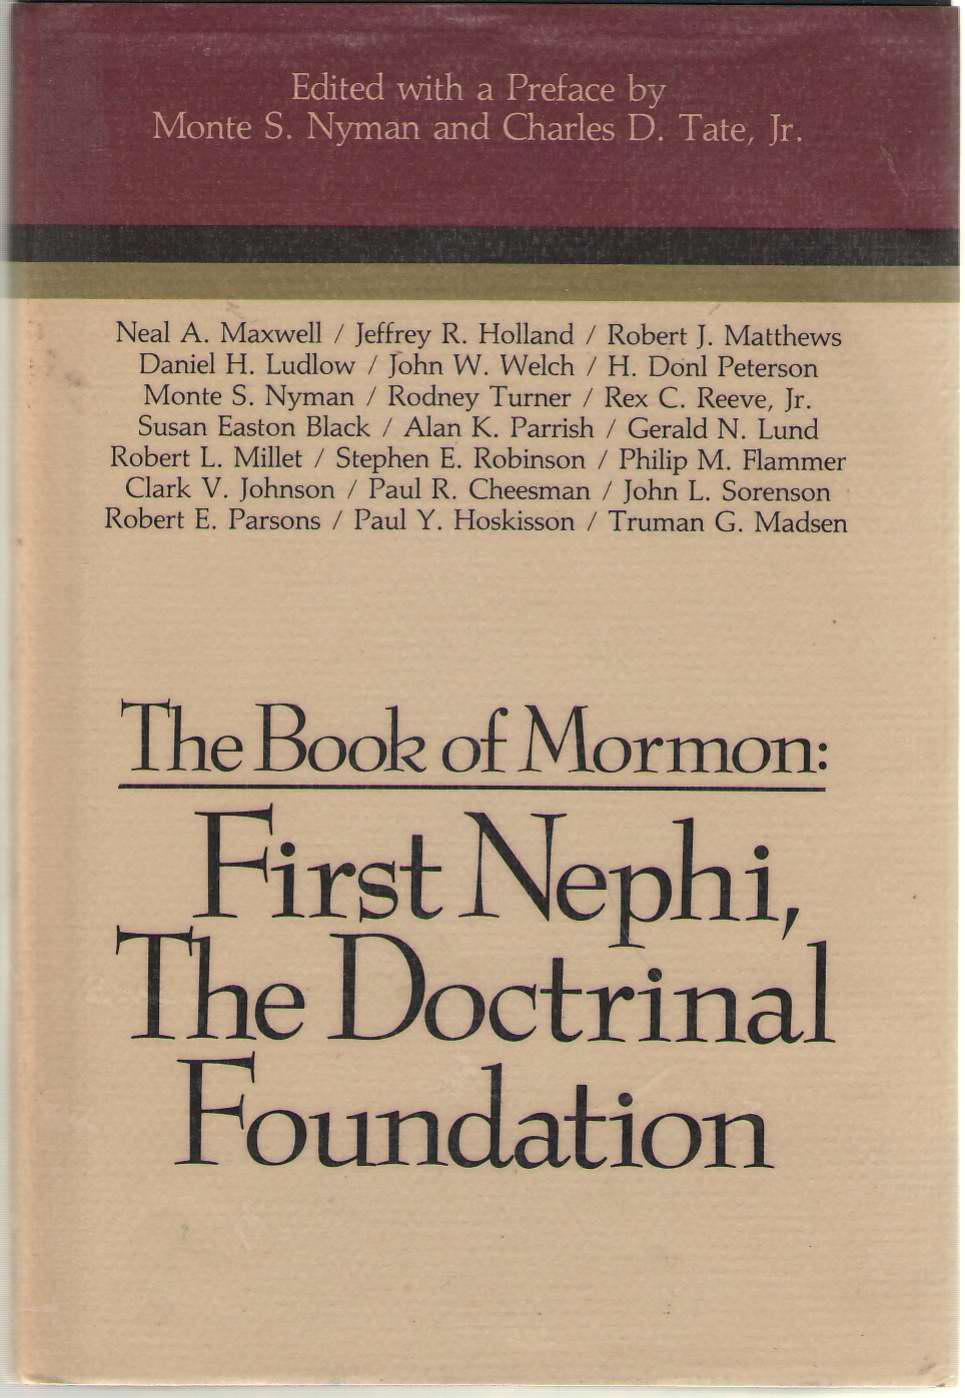 Image for The Book Of Mormon: First Nephi, The Doctrinal Foundation Papers from the Second Annual Book of Mormon Symposium